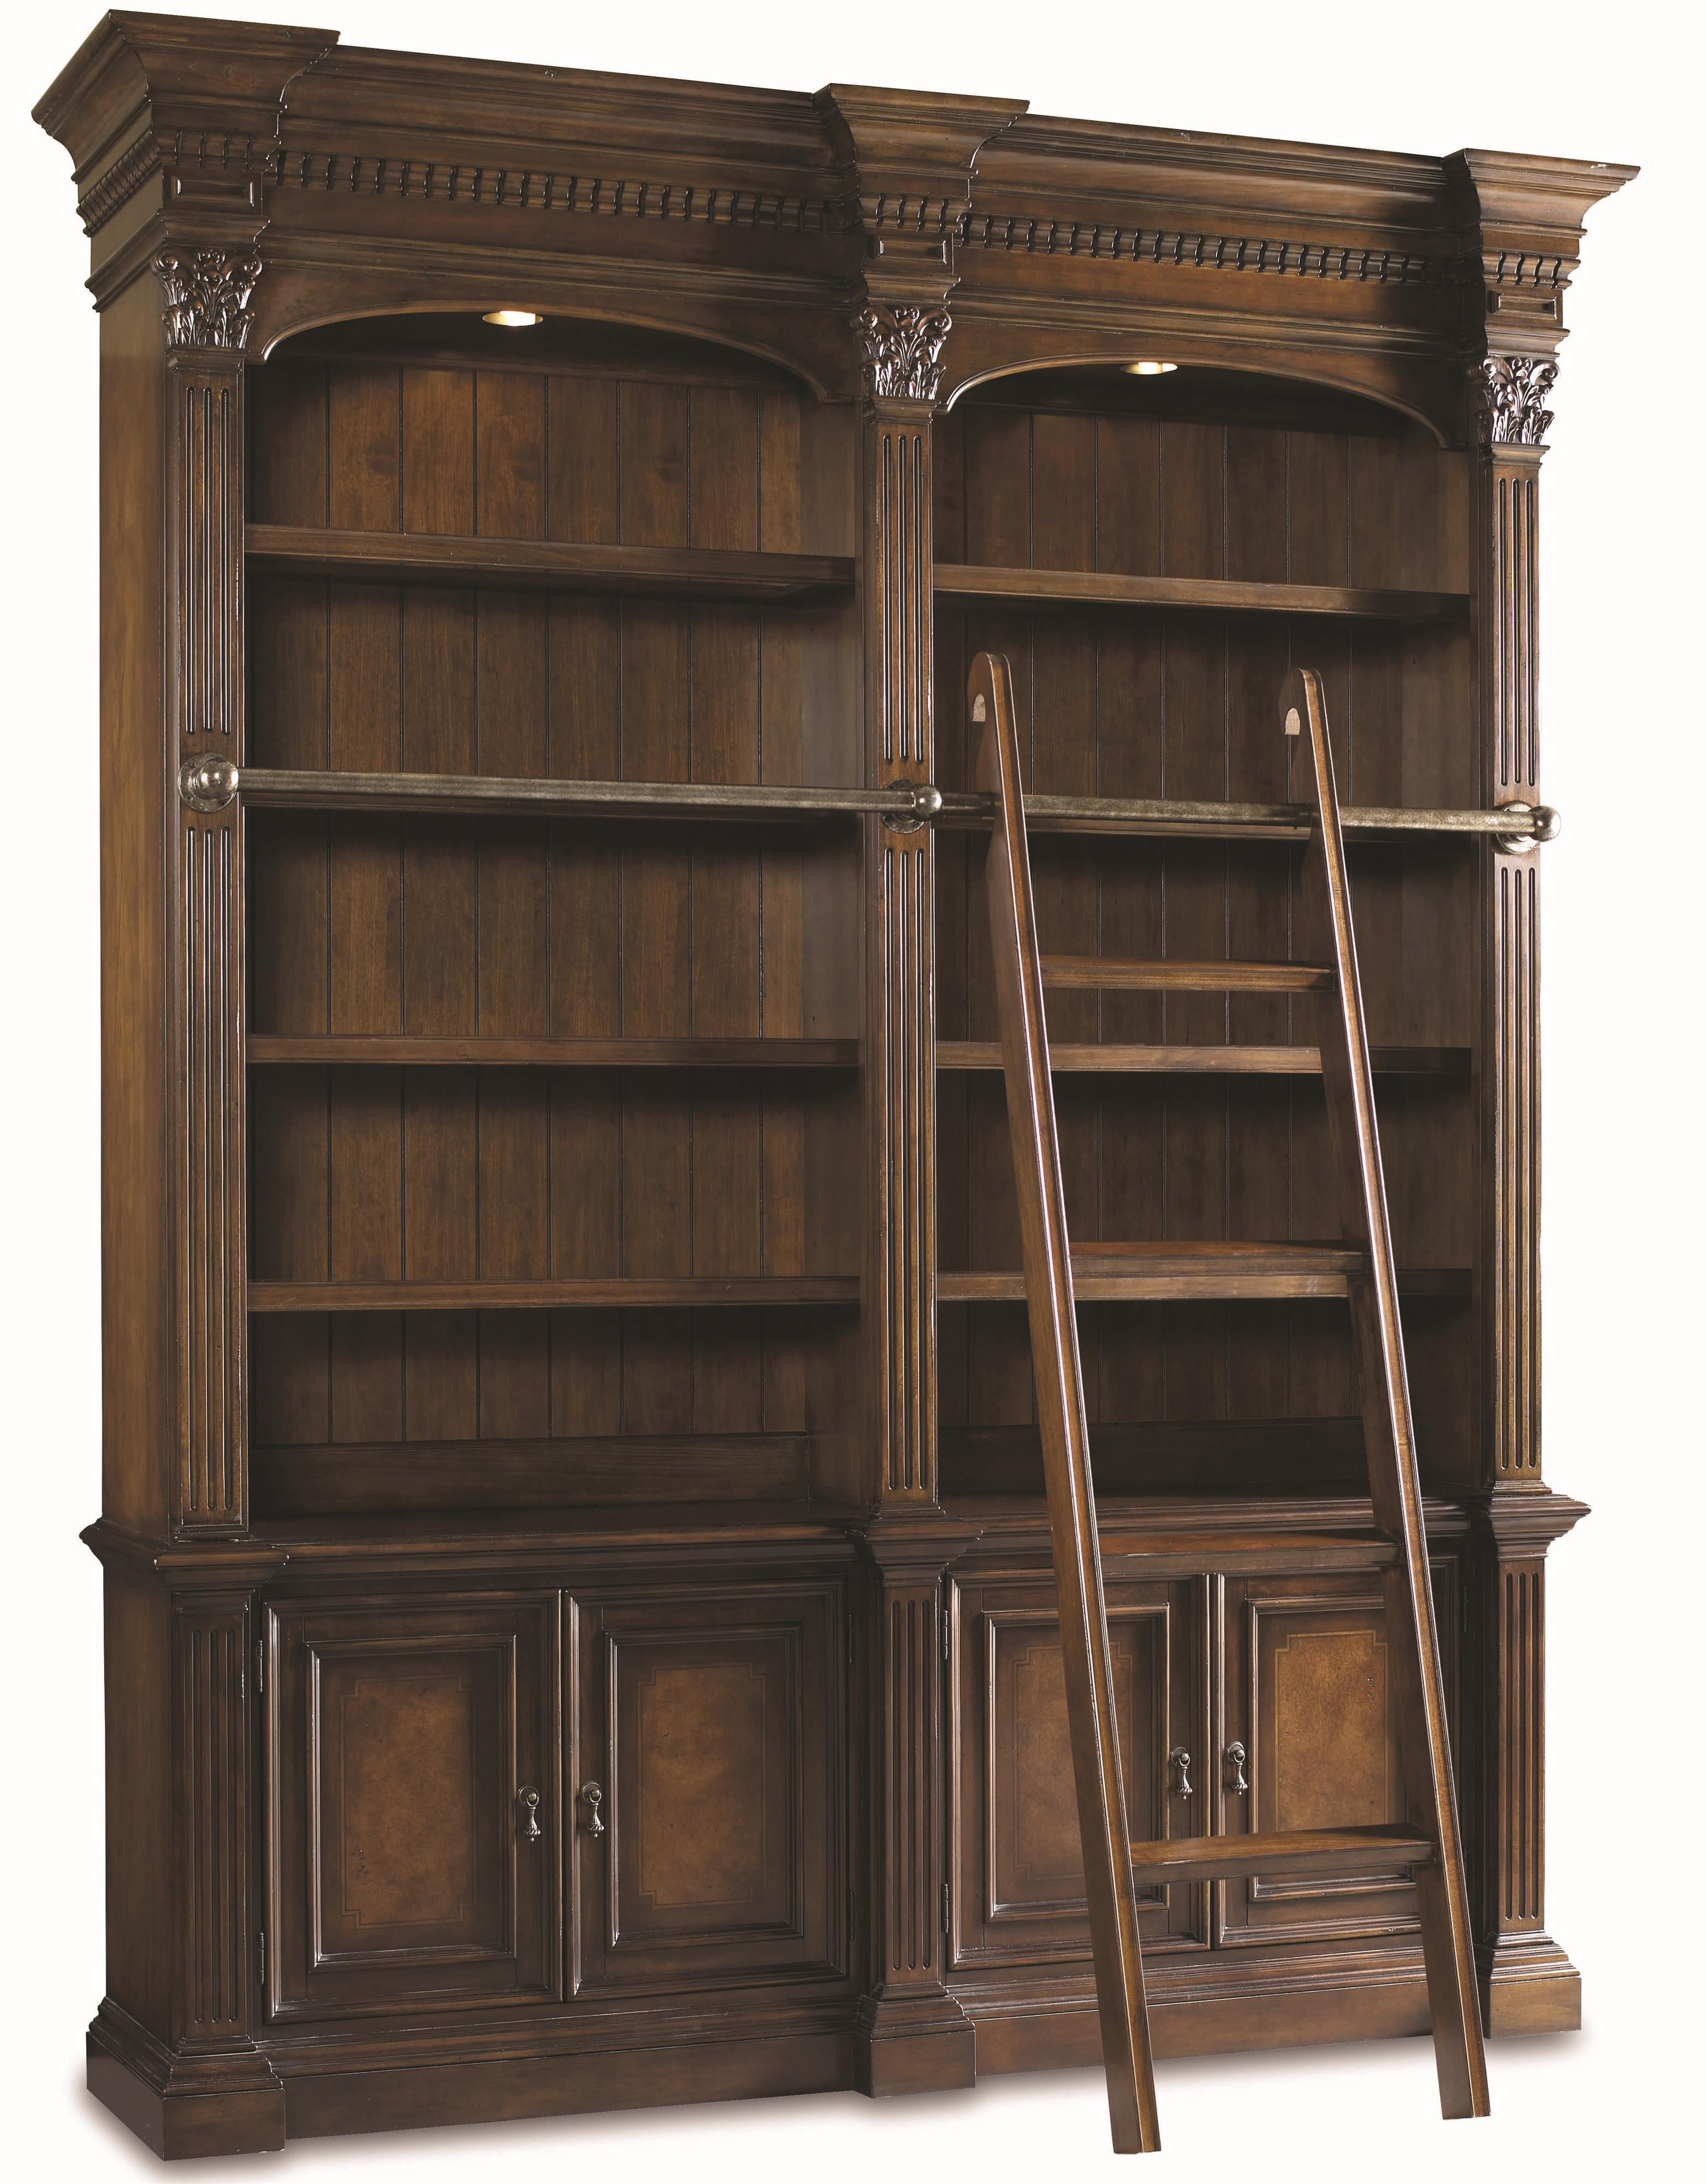 Hooker Furniture European Renaissance II Double Bookcase w/ ladder & rail - Item Number: 374-10-225+465+469+259+256